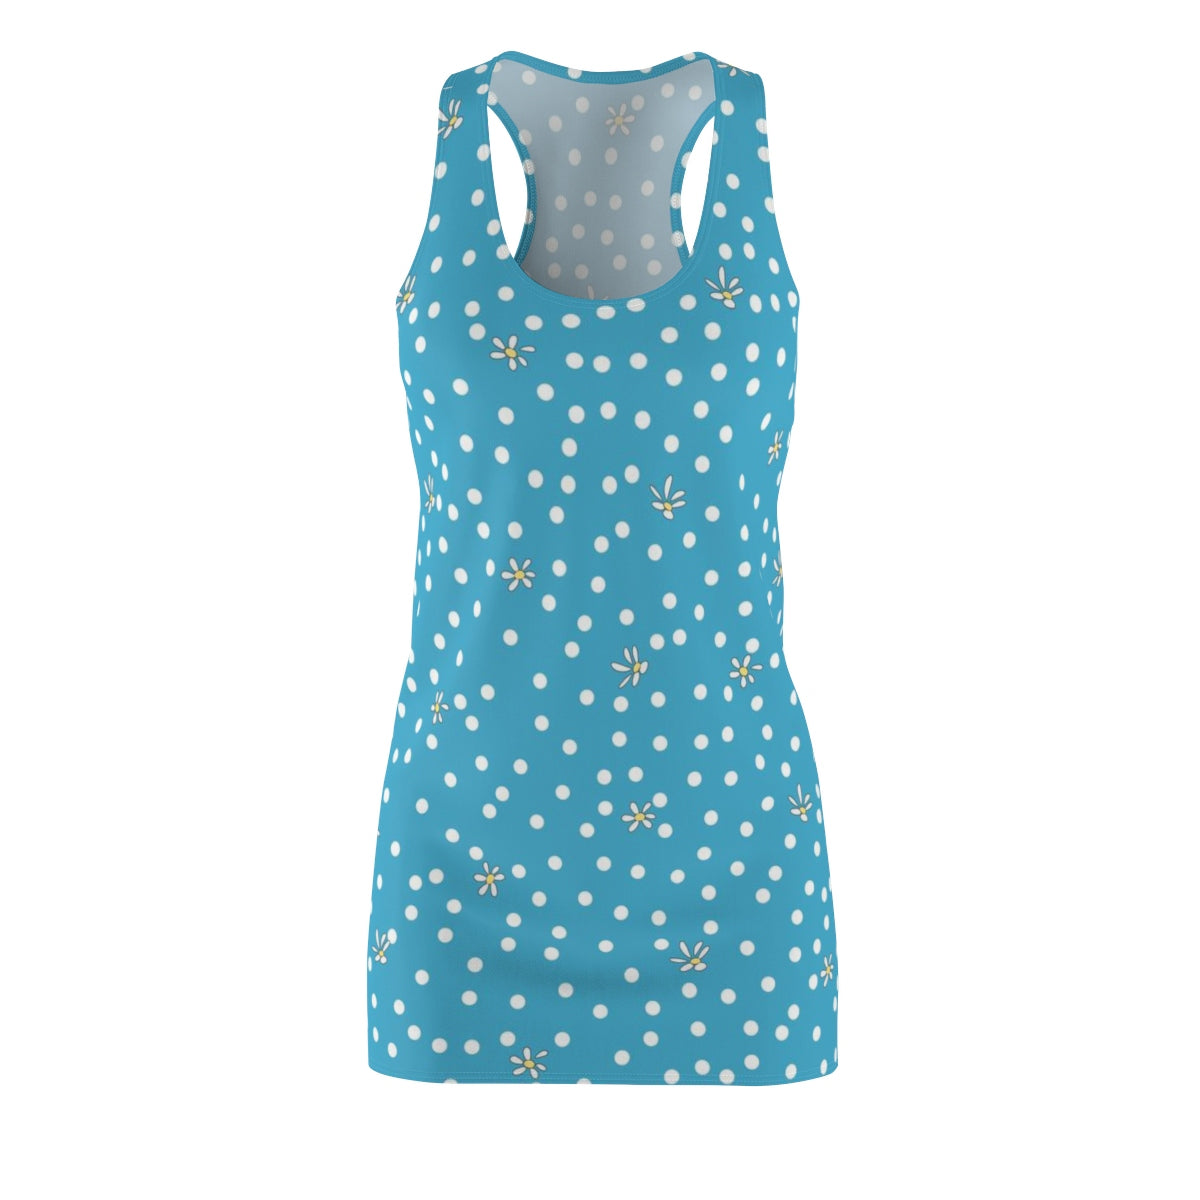 Blue Polka Dot Racerback Dress